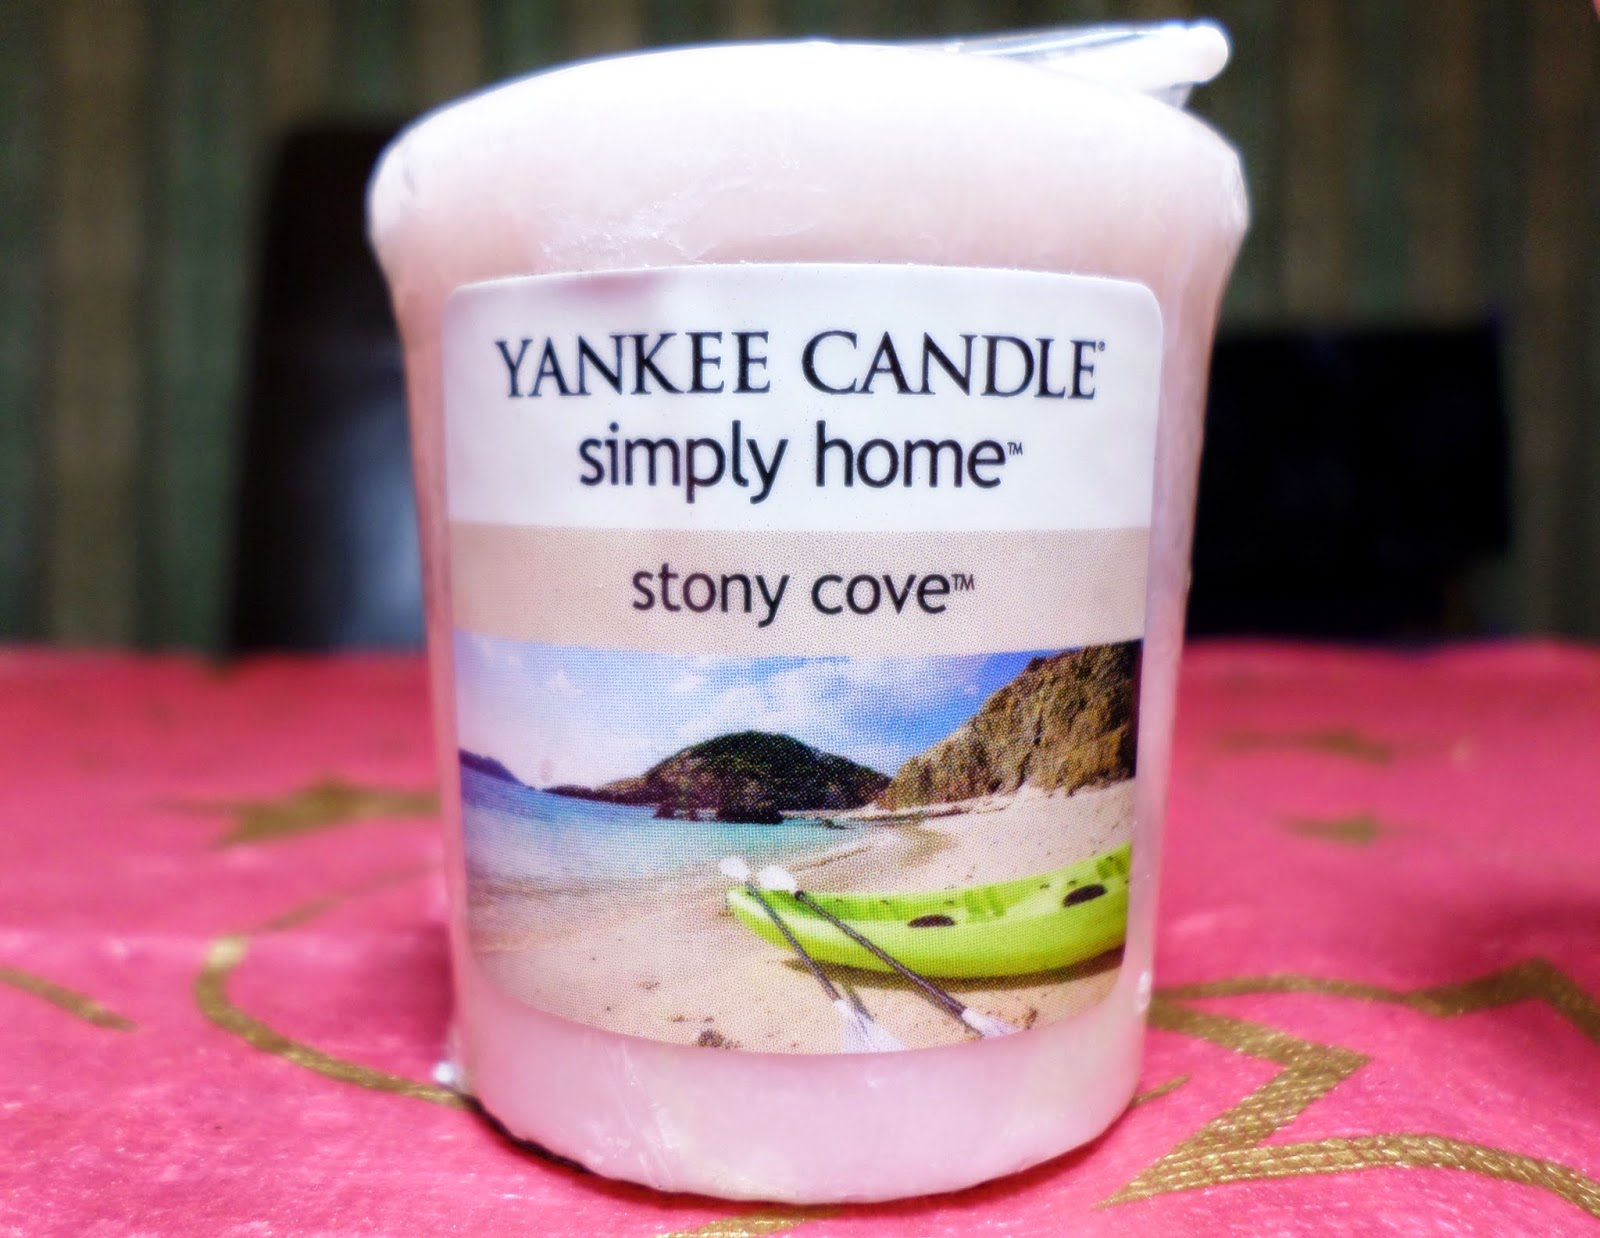 Yankee Candle Simply Home Stony Cove Sampler Votive Review